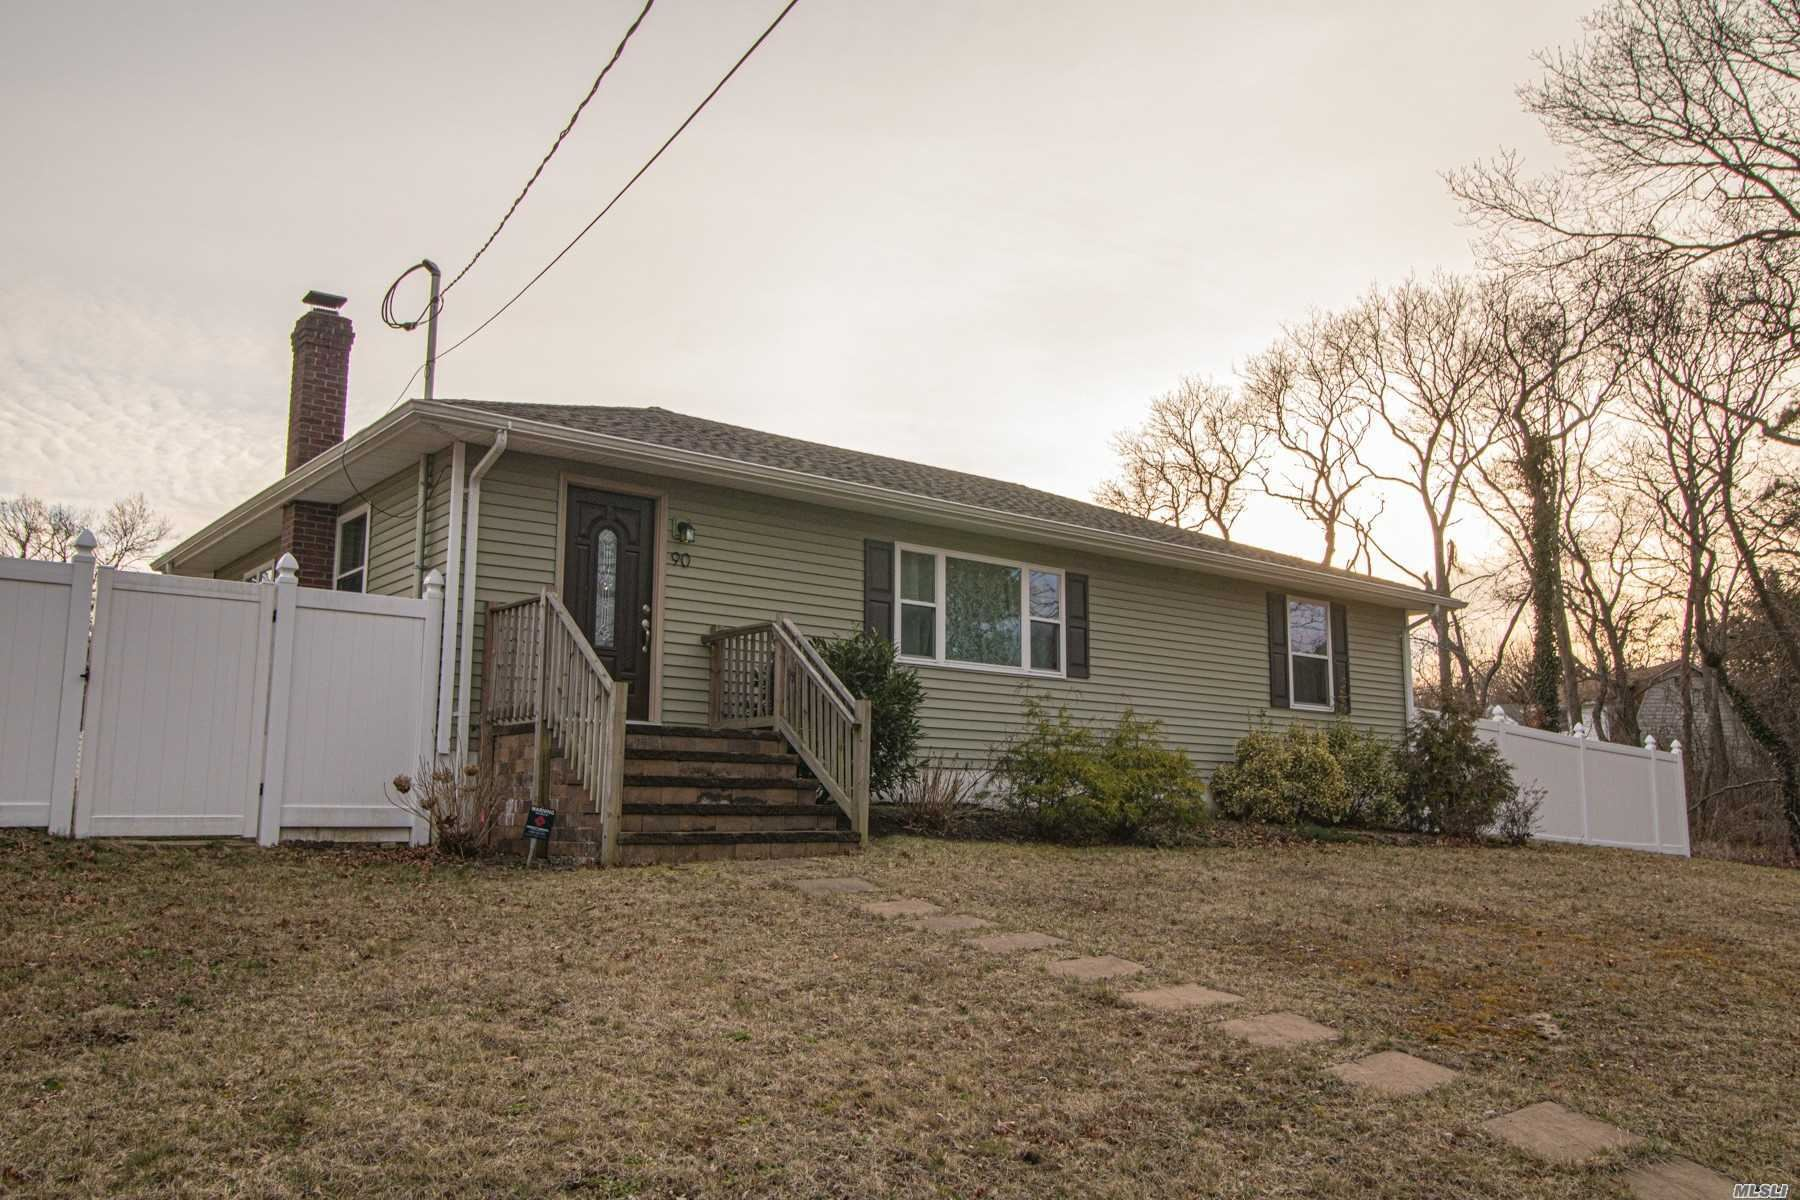 90 Lakeview Dr, Patchogue, NY 11772 - MLS#: 3215938